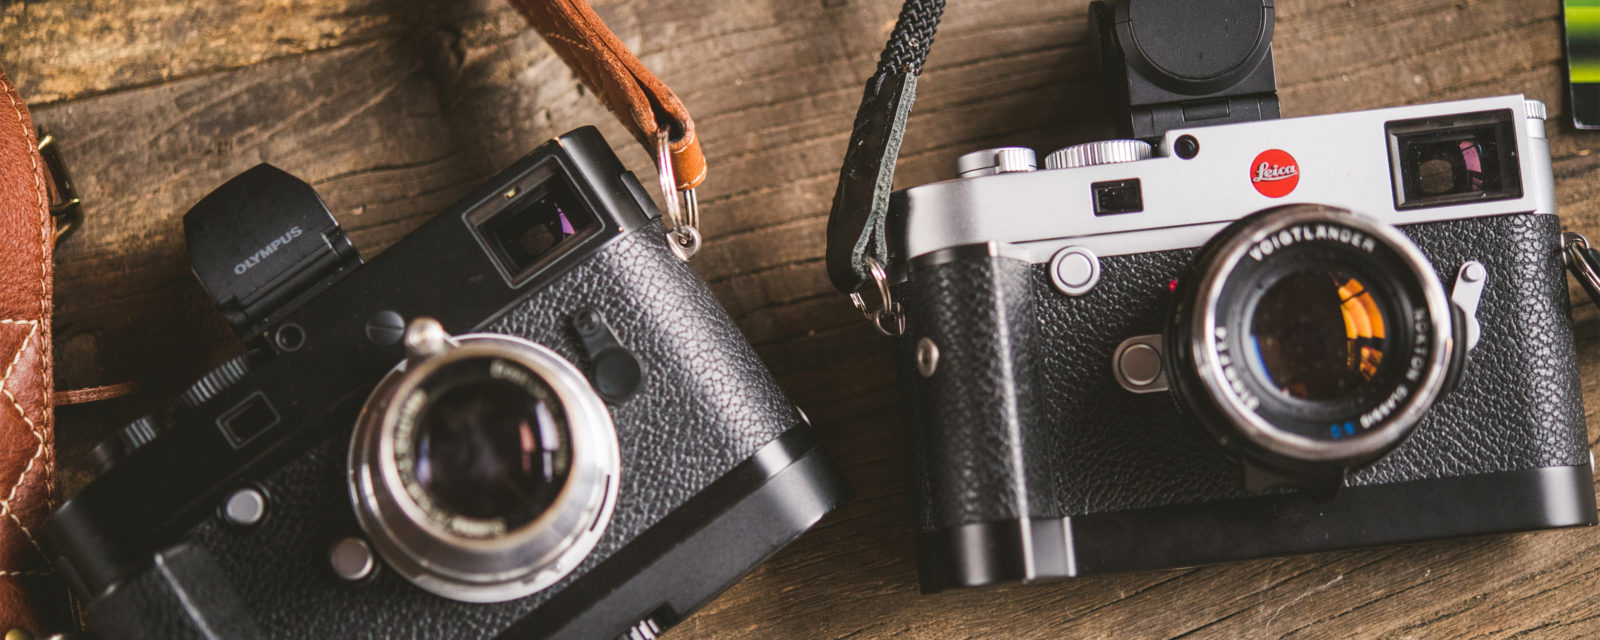 Leica M10 Review with lot s of sample photos and insight by dc ...